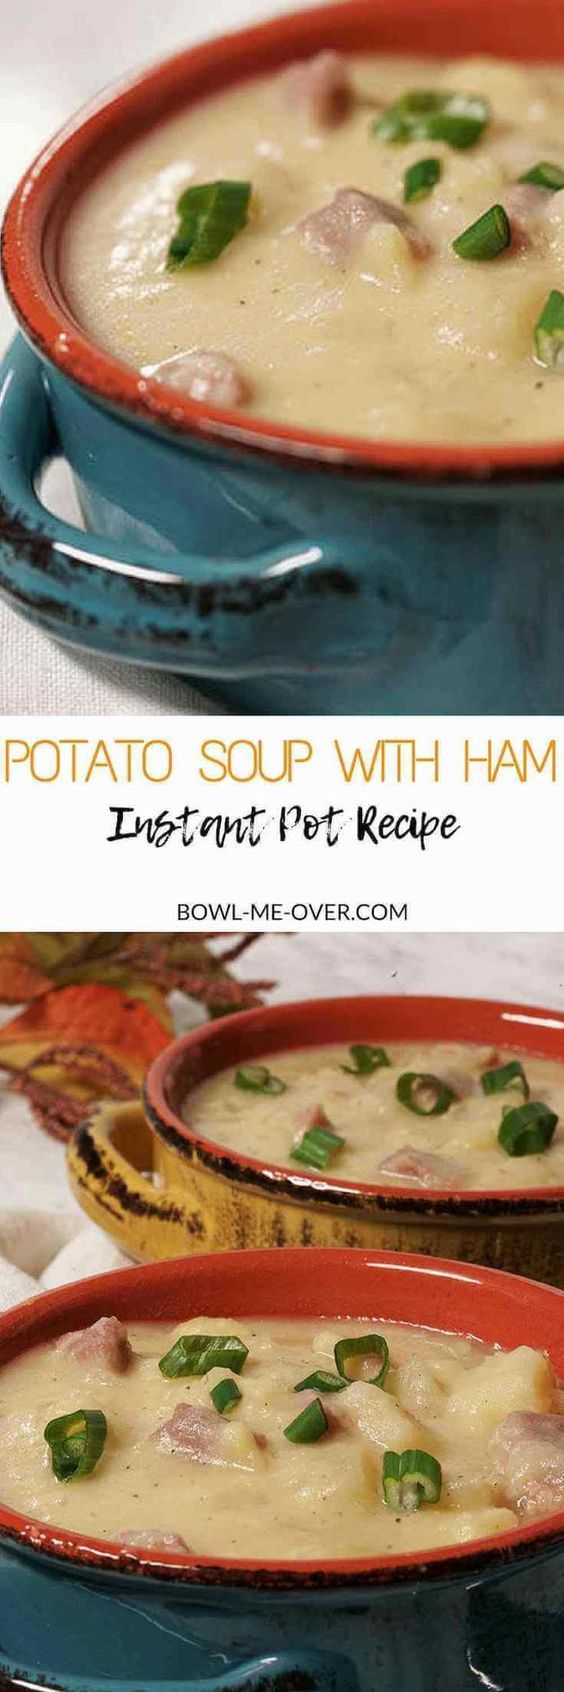 Potato Soup with Ham is a savory, thick soup made creamy with Yukon Gold potatoes and thickened with starchy russet potatoes, a healthy serving of ham with a bit of cheese, it's an easy soup to make! #InstantPot